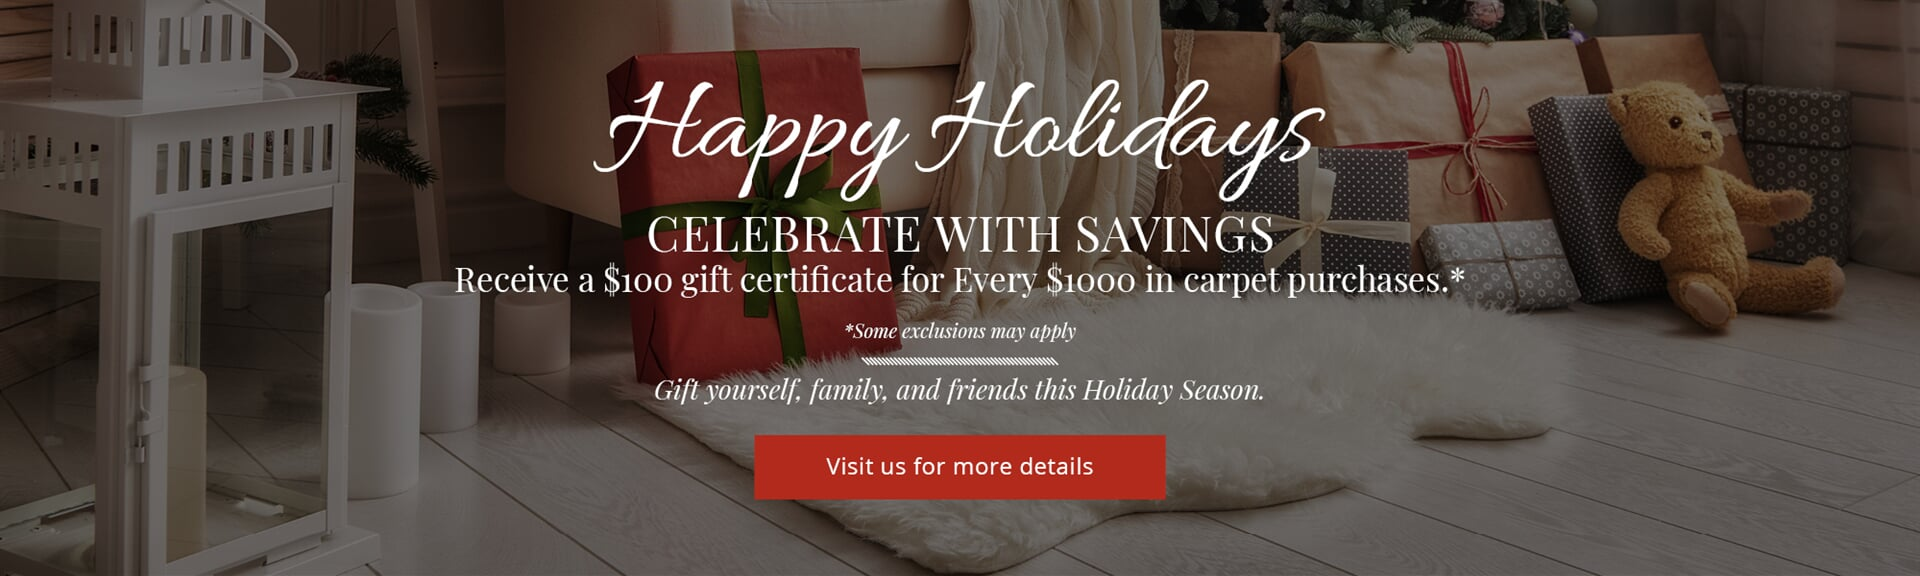 Happy Holidays! Celebrate the savings by receiving a $100 gift certificate for ever $1000 in carpet purchases in  from Appleton Carpetland USA